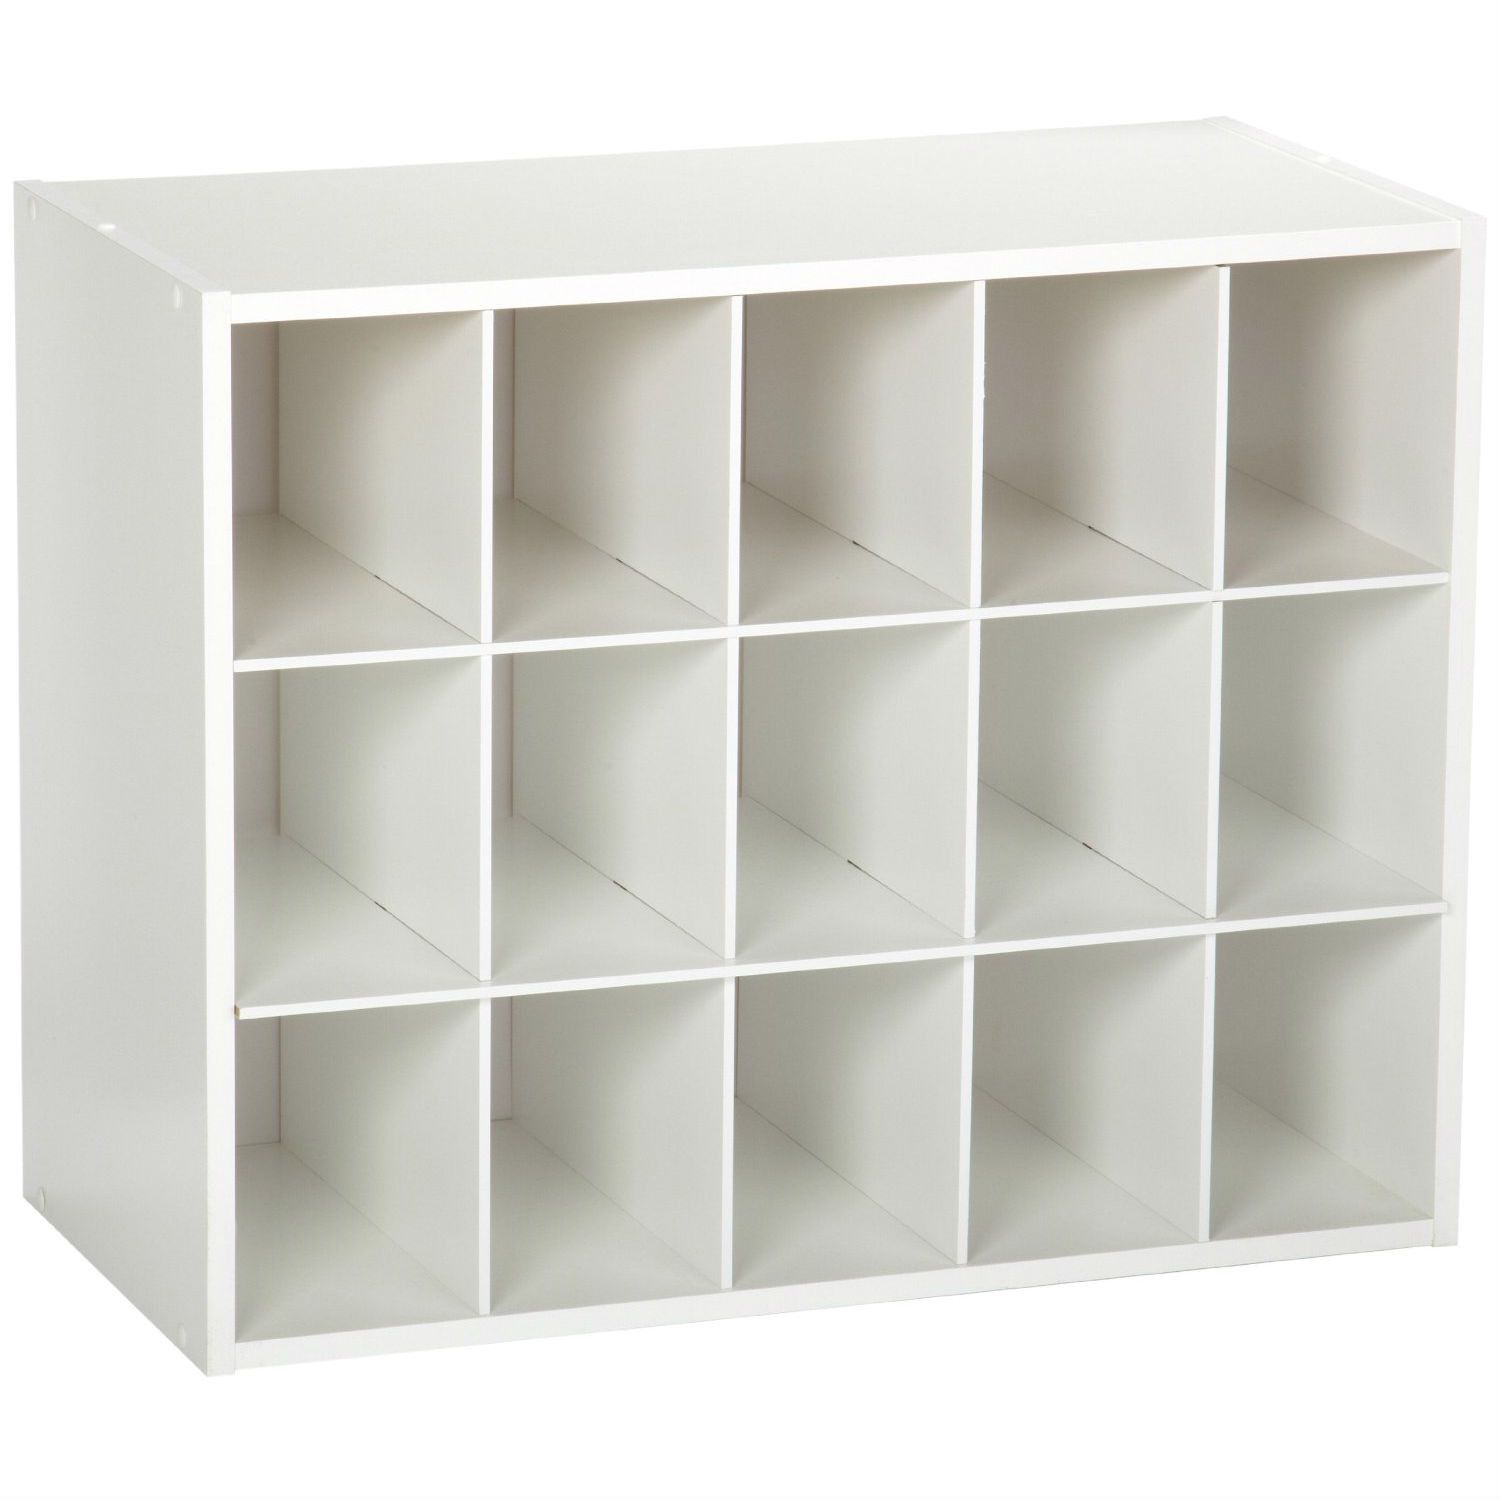 door wooden teak ideas expensive solution double of classic furnitures design decoration shoes matter and brilliant horizon fenzer cheap shoe creative rack an rustic storage a with